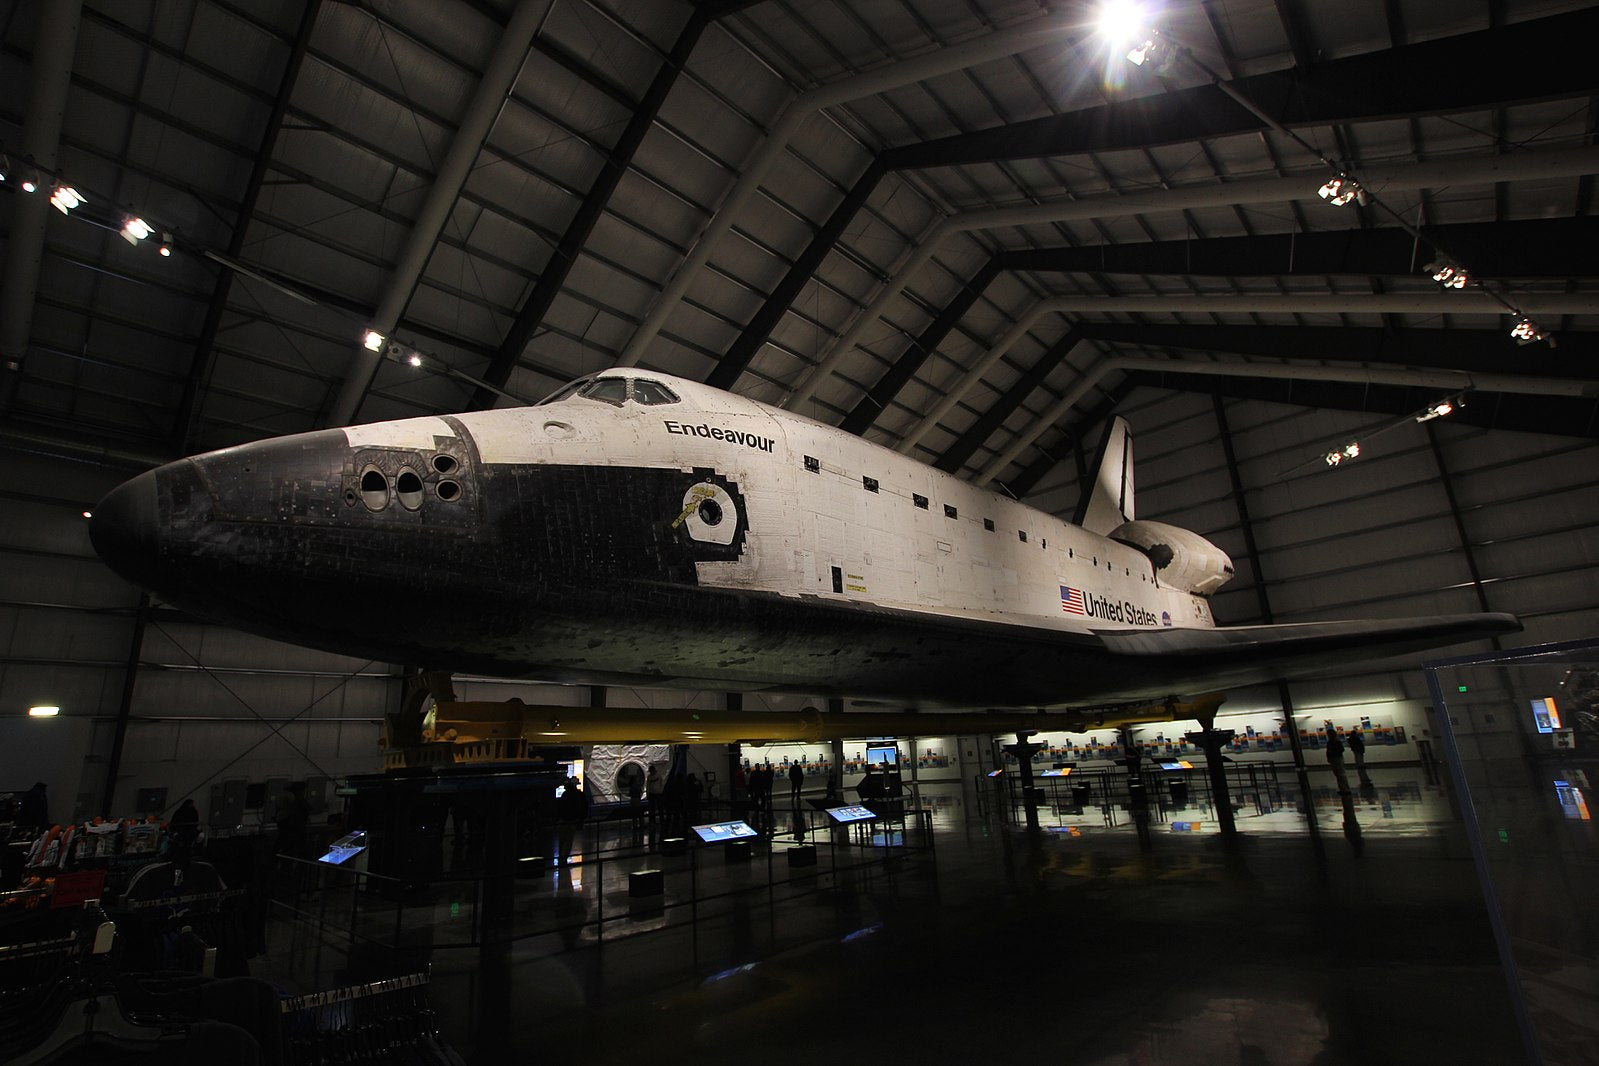 Space Shuttle Endeavour, located at the California Science Center